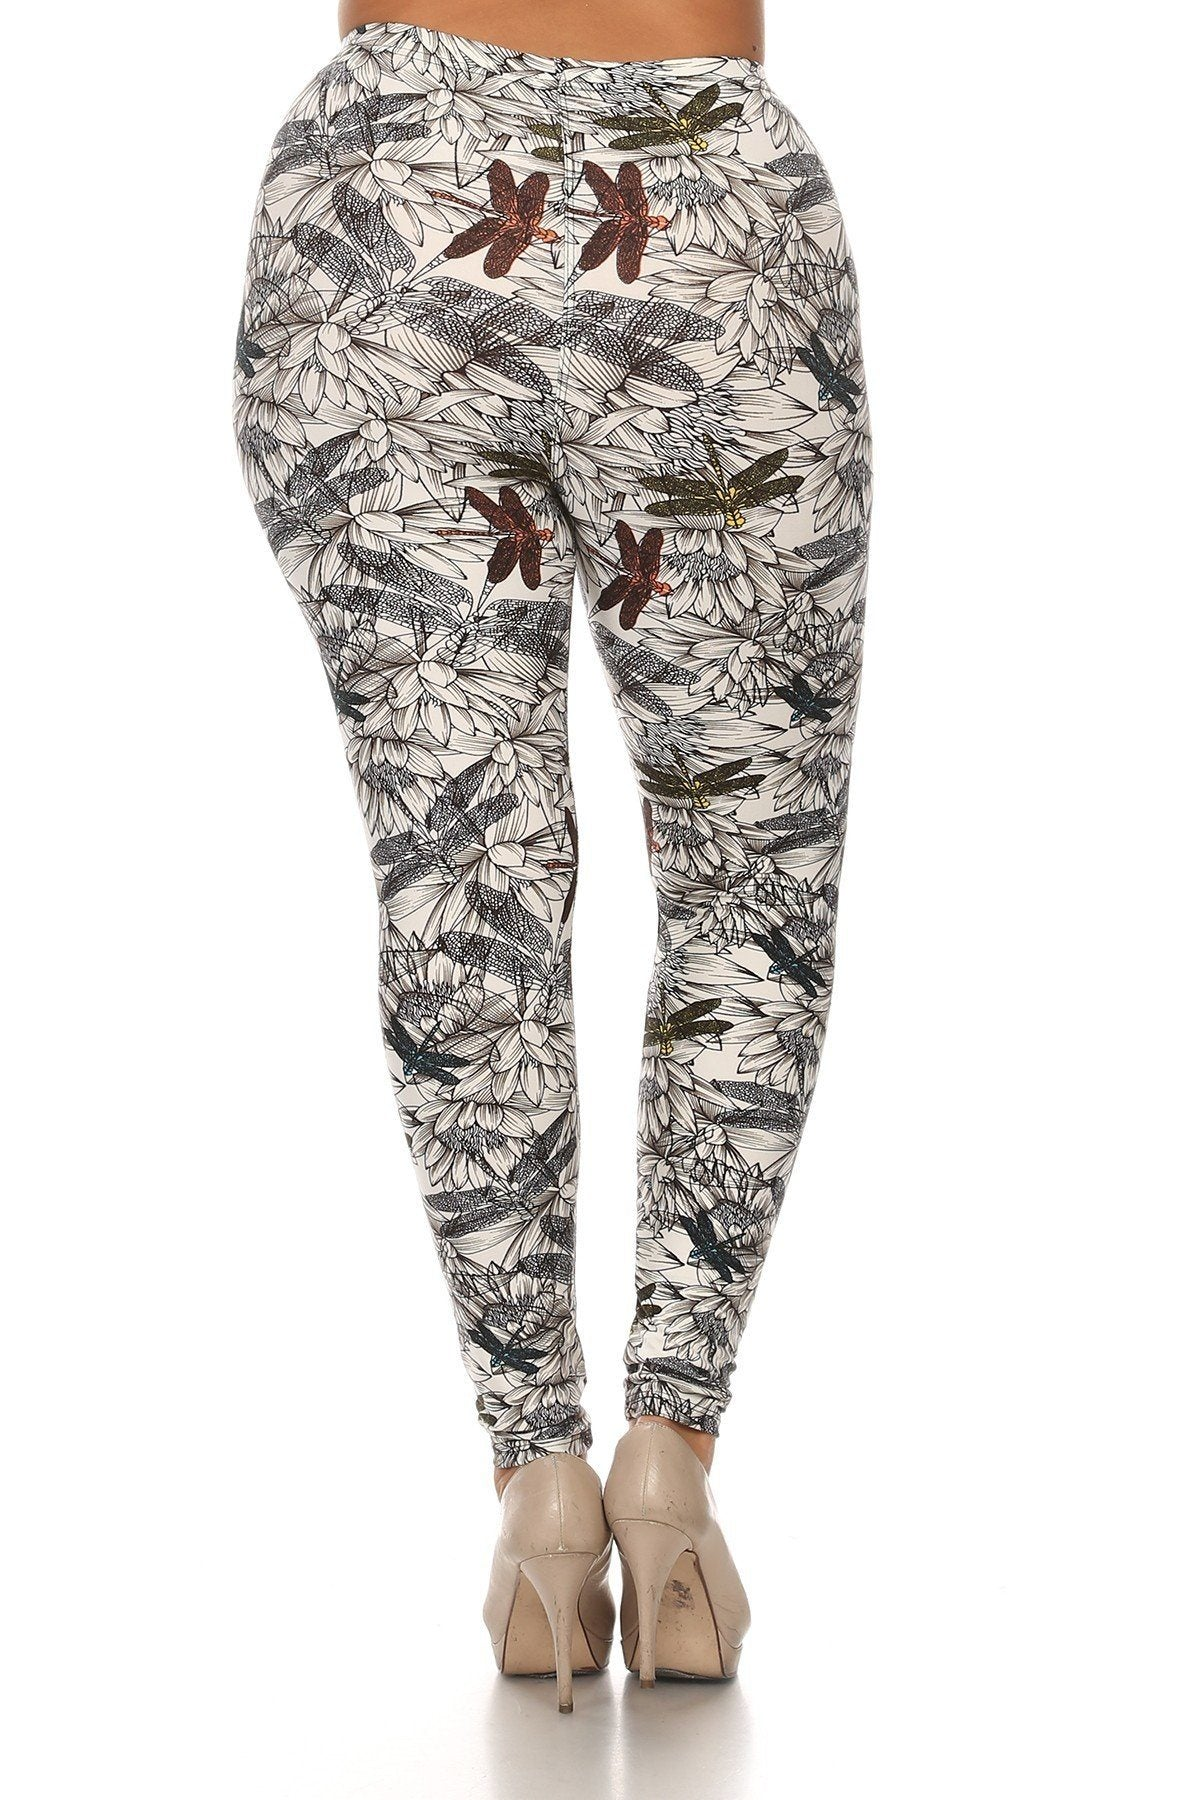 Denim G.O.A.T Plus - Dragonfly Leggings - The Luxstop